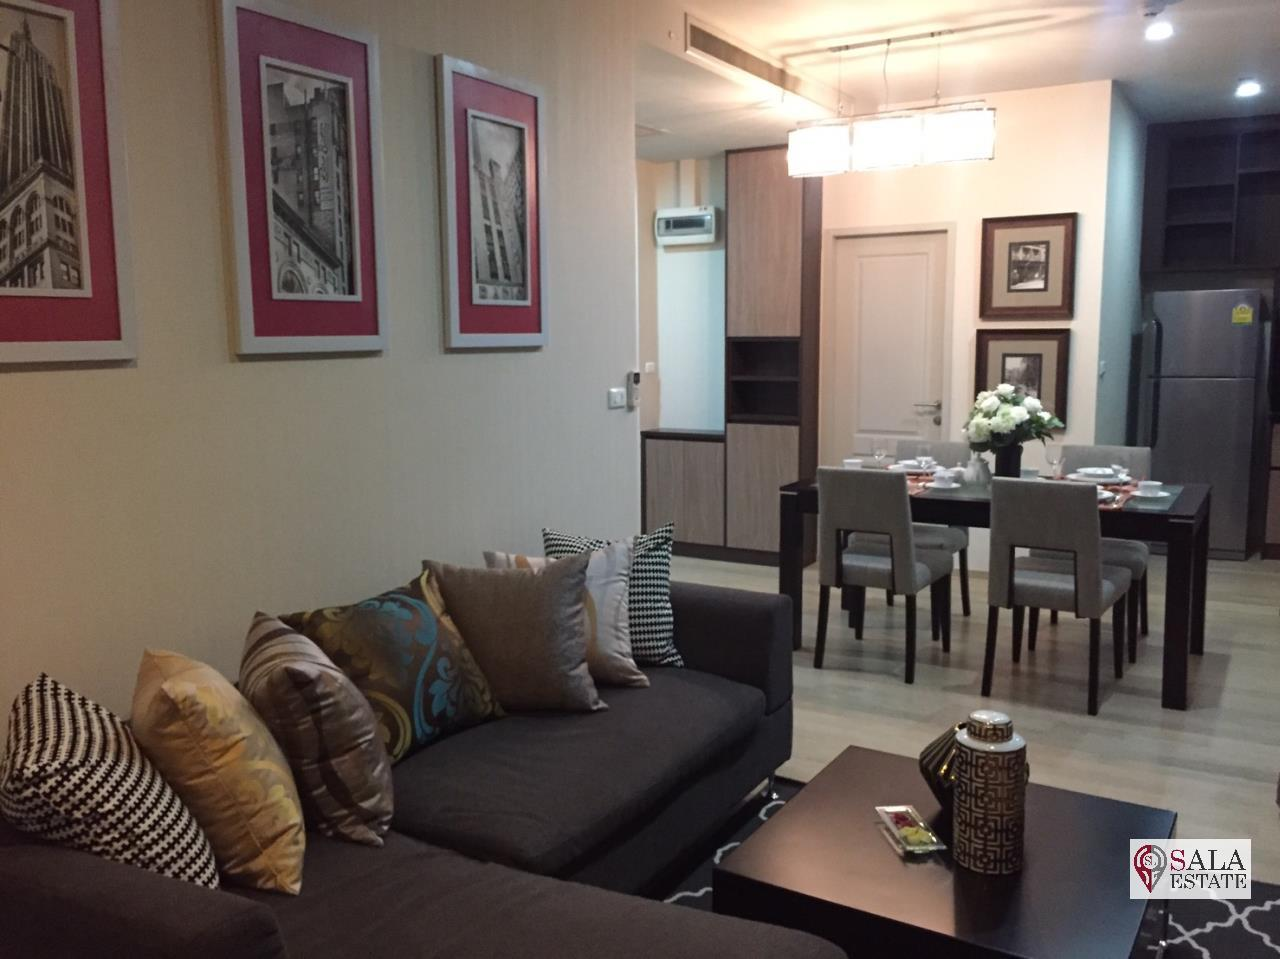 SALA ESTATE Agency's (FOR RENT/SALE) NOBLE REFINE – BTS PHROM PHONG, 2 BEDROOMS 2 BATHROOMS, FULLY FURNISHED 5